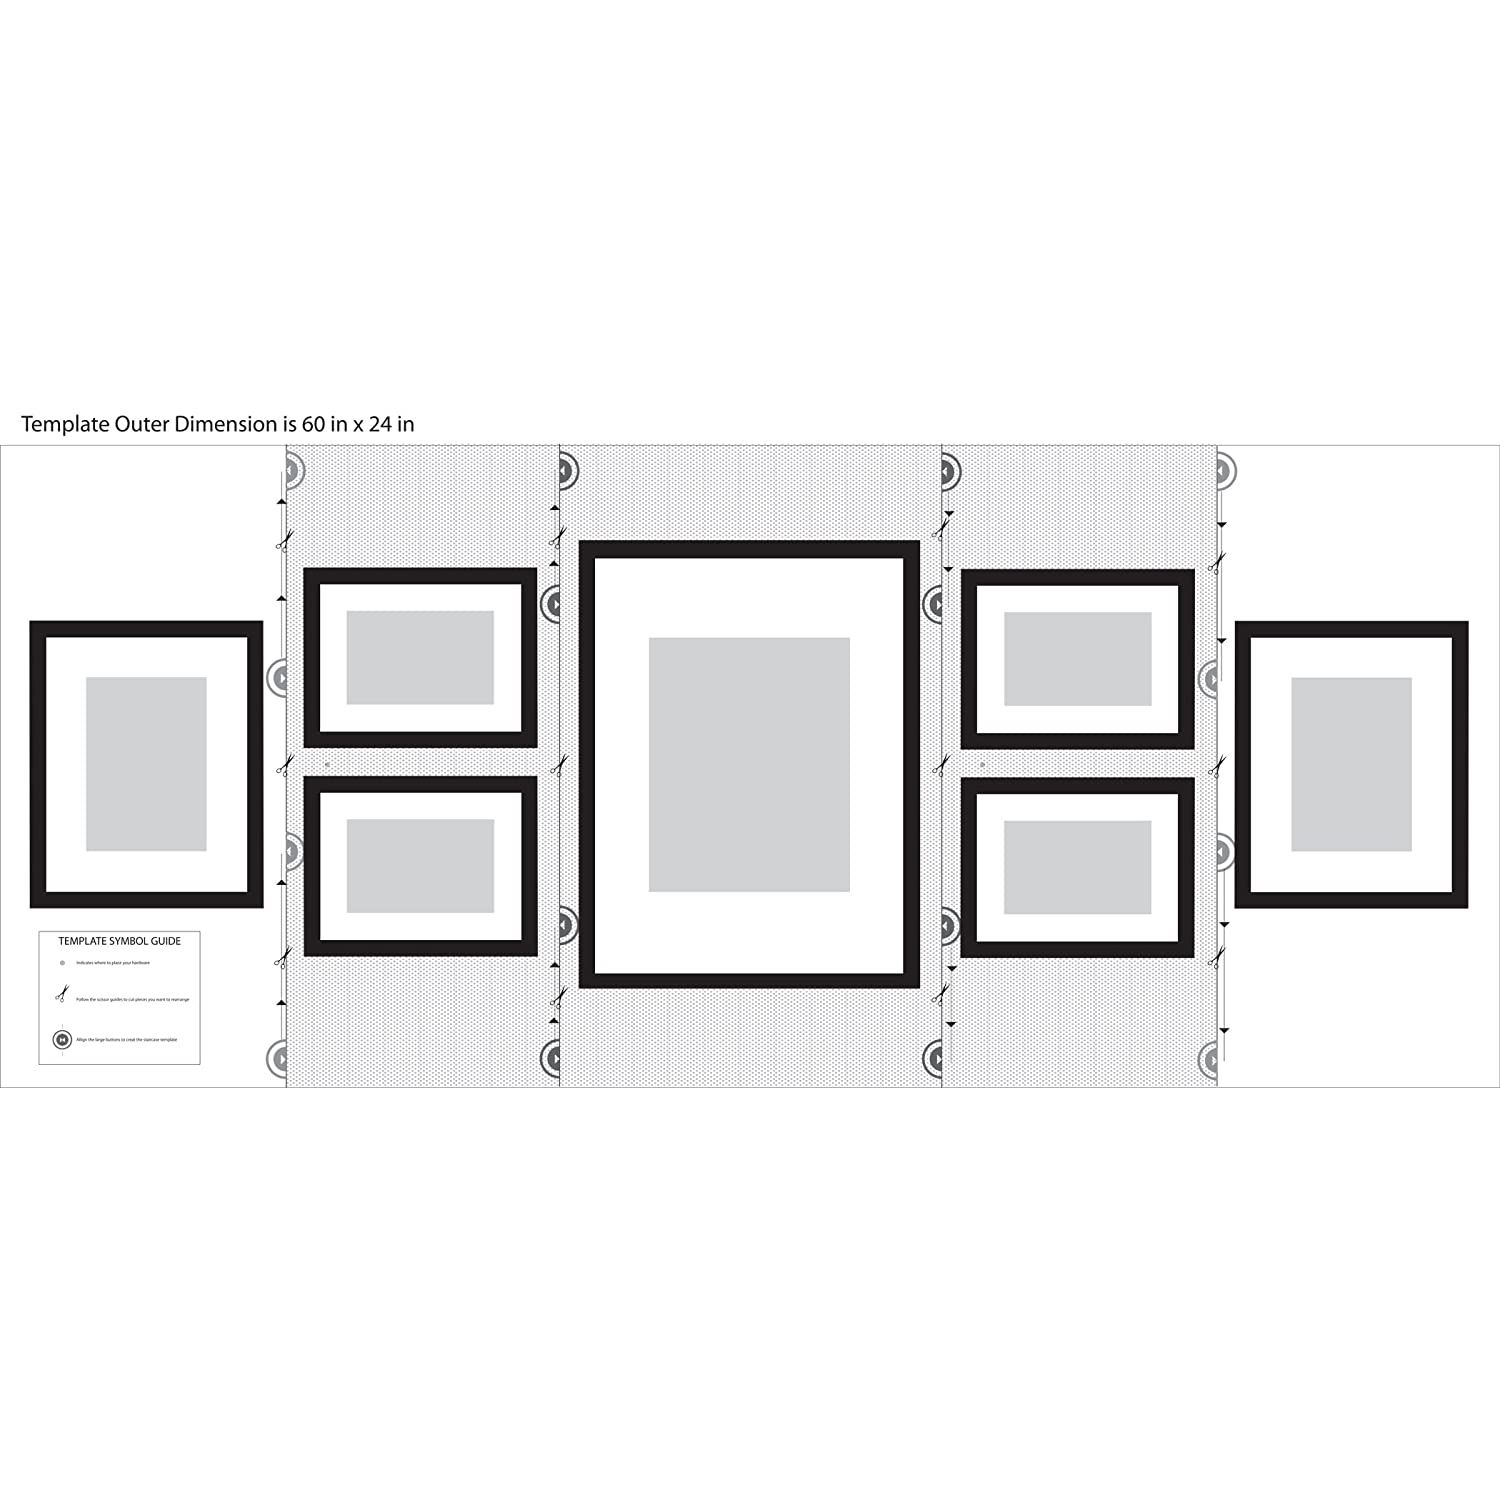 black solid wood 7 piece wall frame set with usable artwork includes 4 6x8 frames matted to 4x6 2 8x10 frames matted to 5x7 and 1 12x16 frame matted to